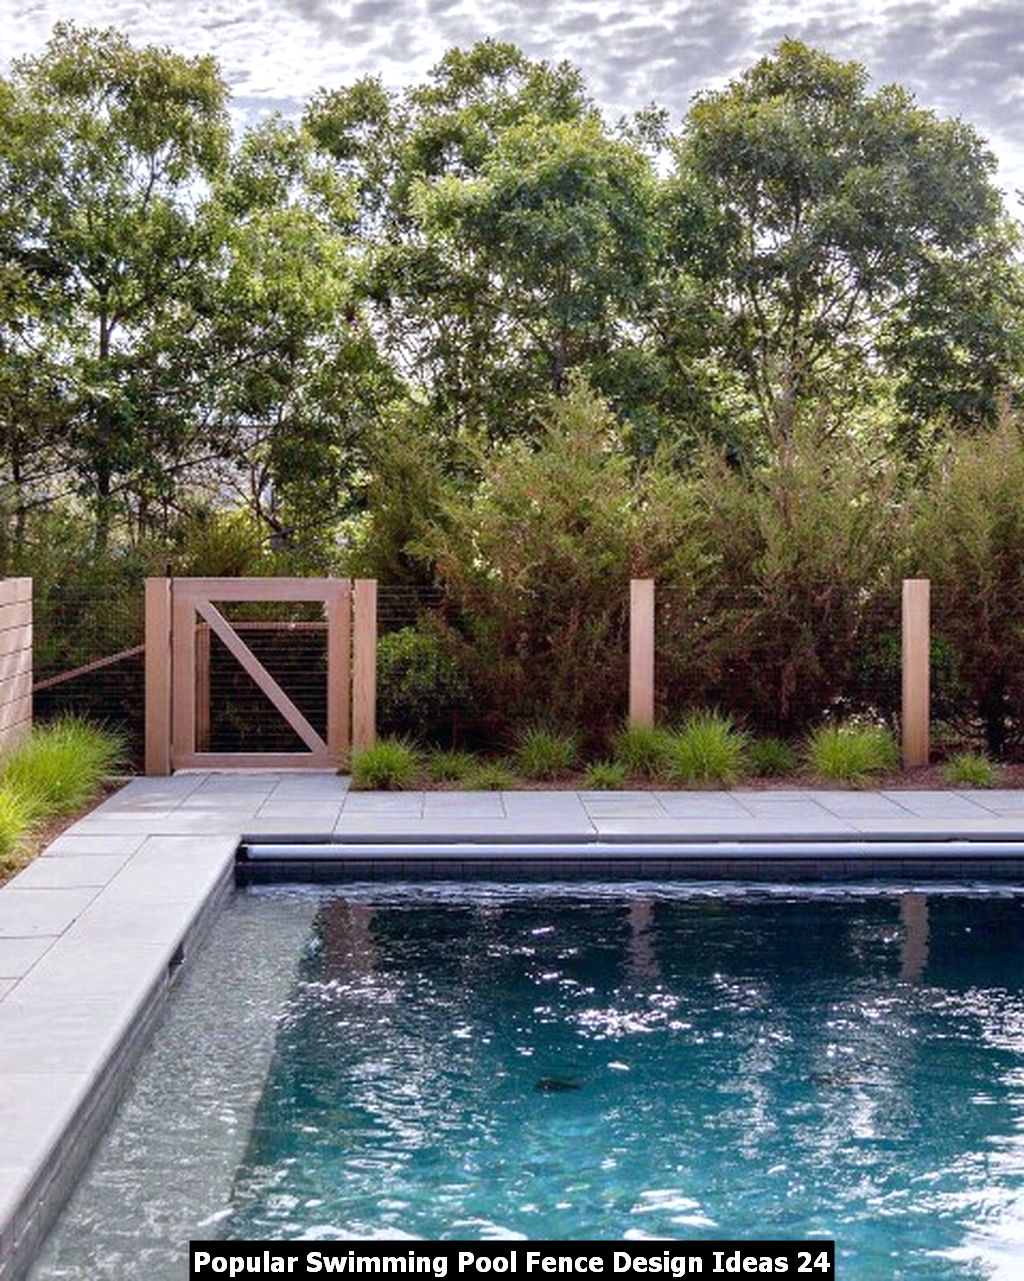 Popular Swimming Pool Fence Design Ideas 24